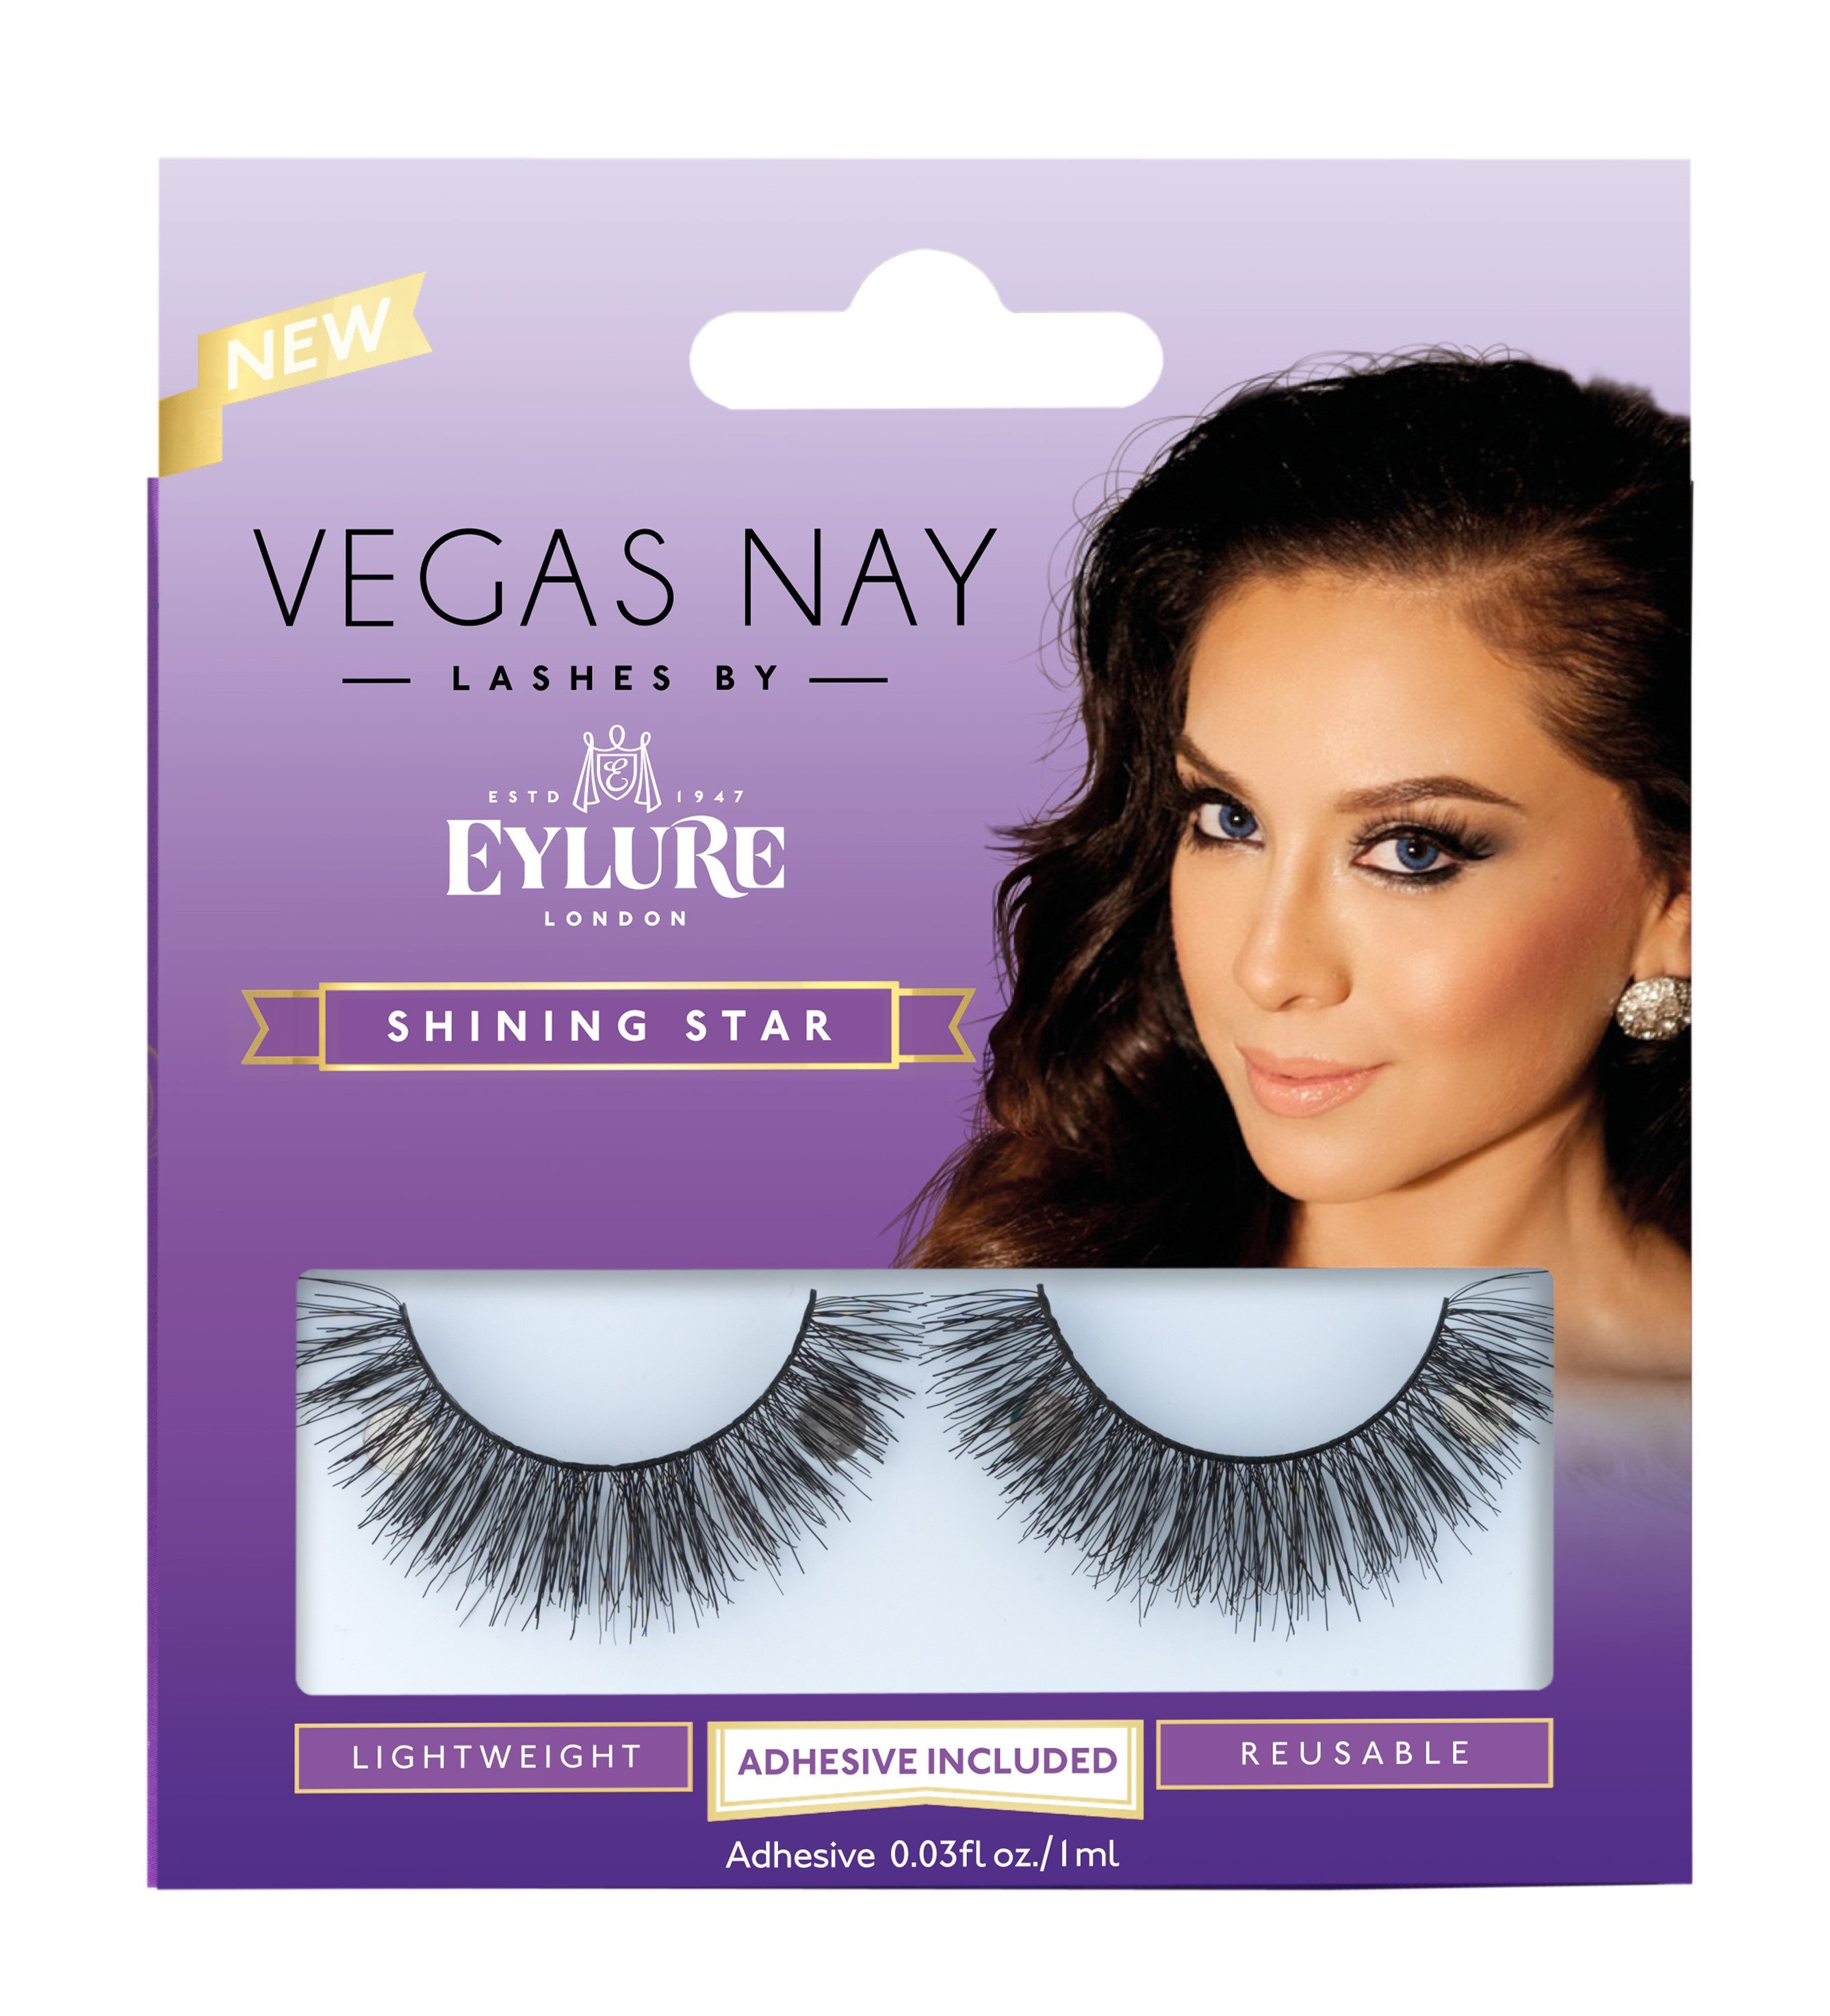 (2 Pack) Vegas Nay by Eylure Shining Star Eyelashes Kit, 2 pc